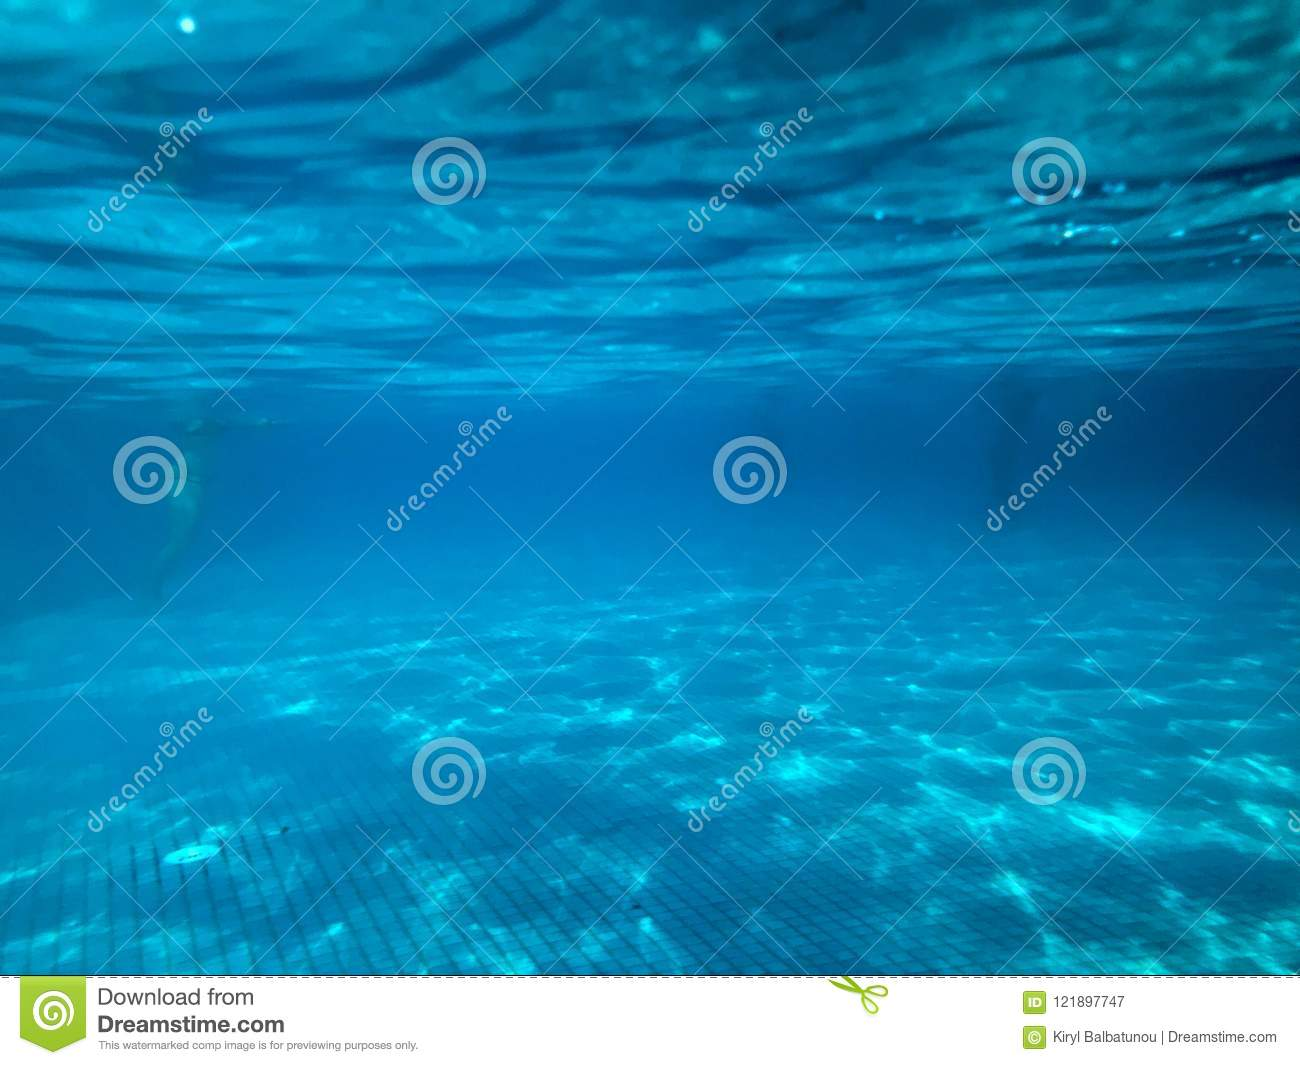 View Swimming Pool With Ceramic Tiles Under Blue Water Underwater